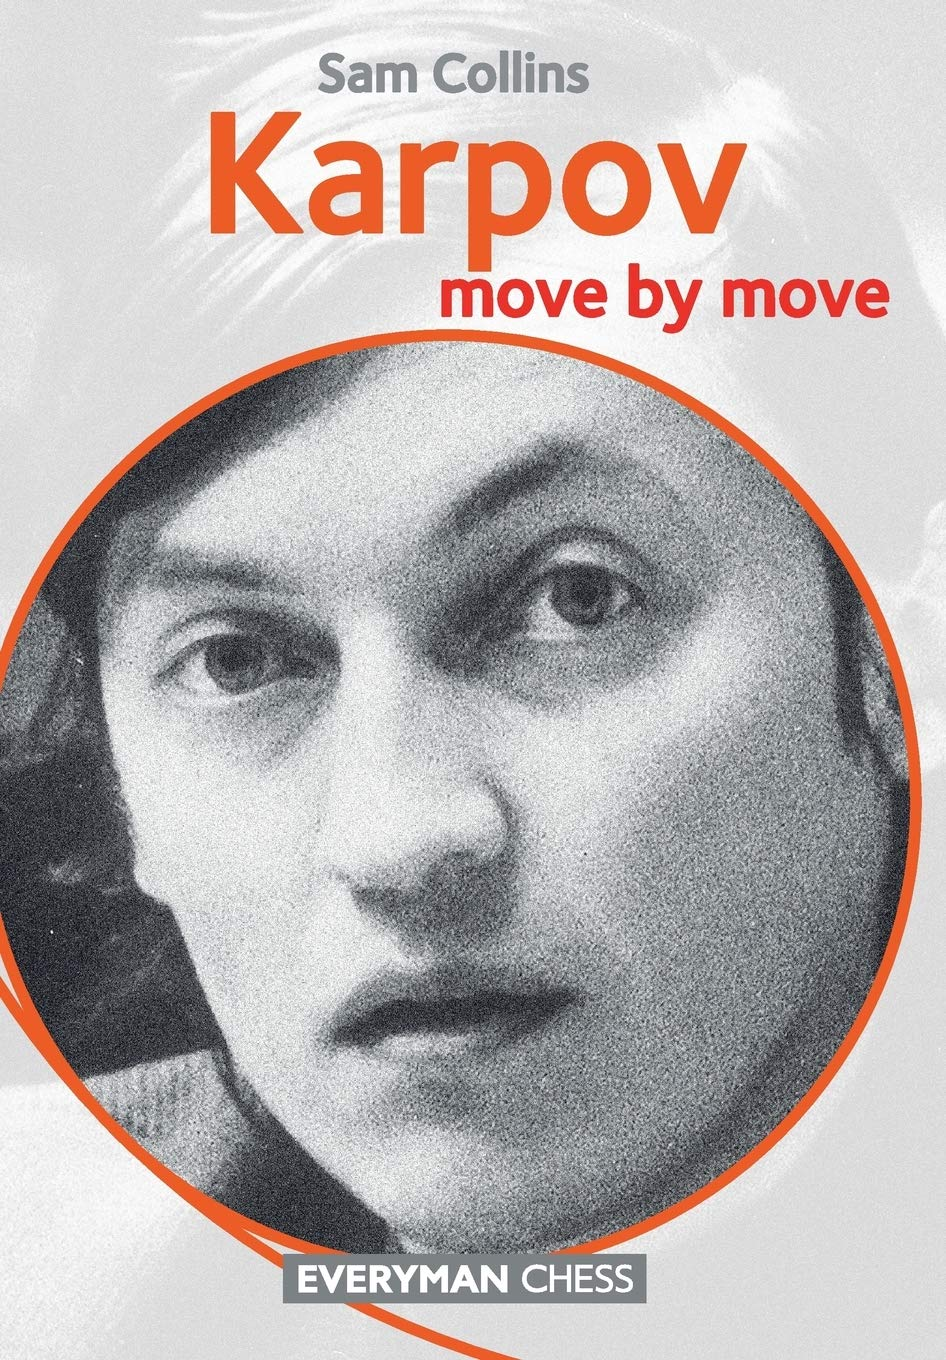 Karpov, move by move